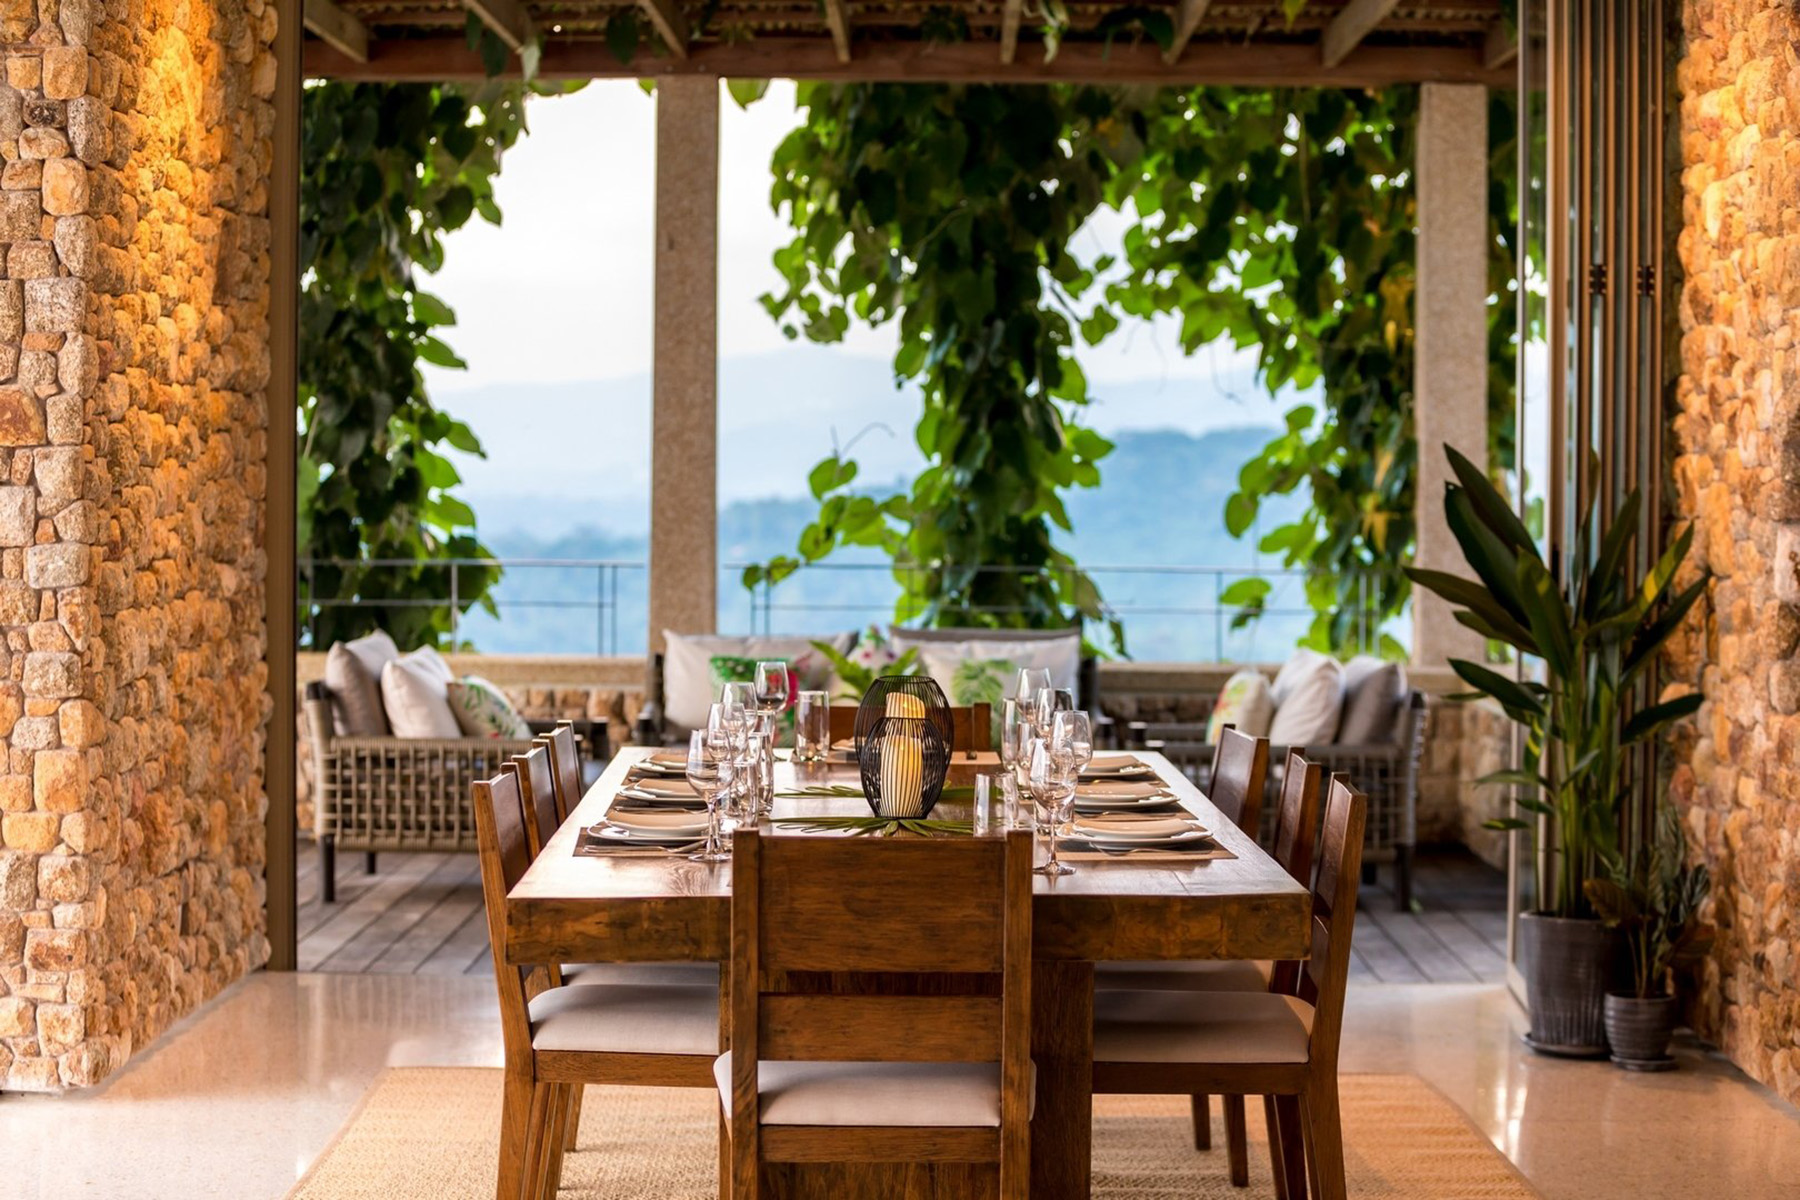 acacia wood patio furniture table and chairs under a pergola